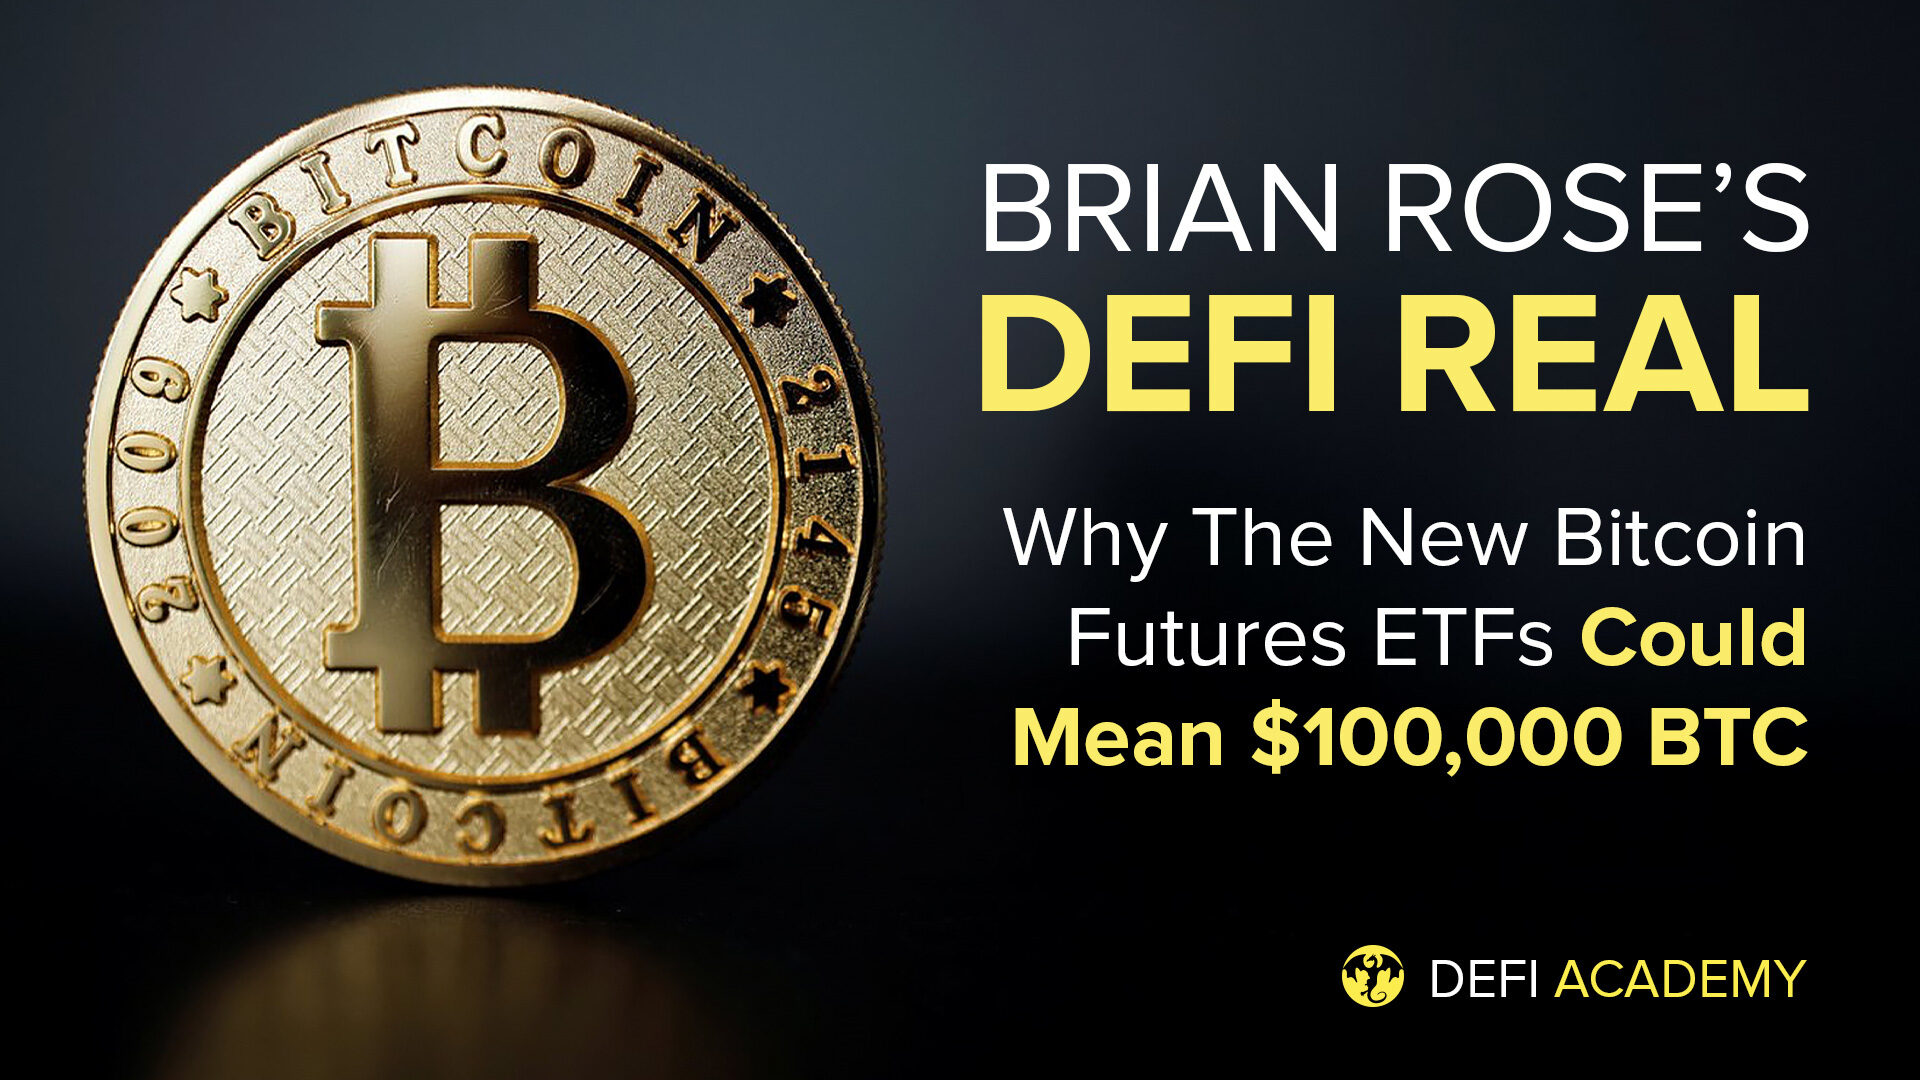 Why The New Bitcoin Futures ETFs Could Mean $100,000 BTC - Brian Rose's DeFi Real